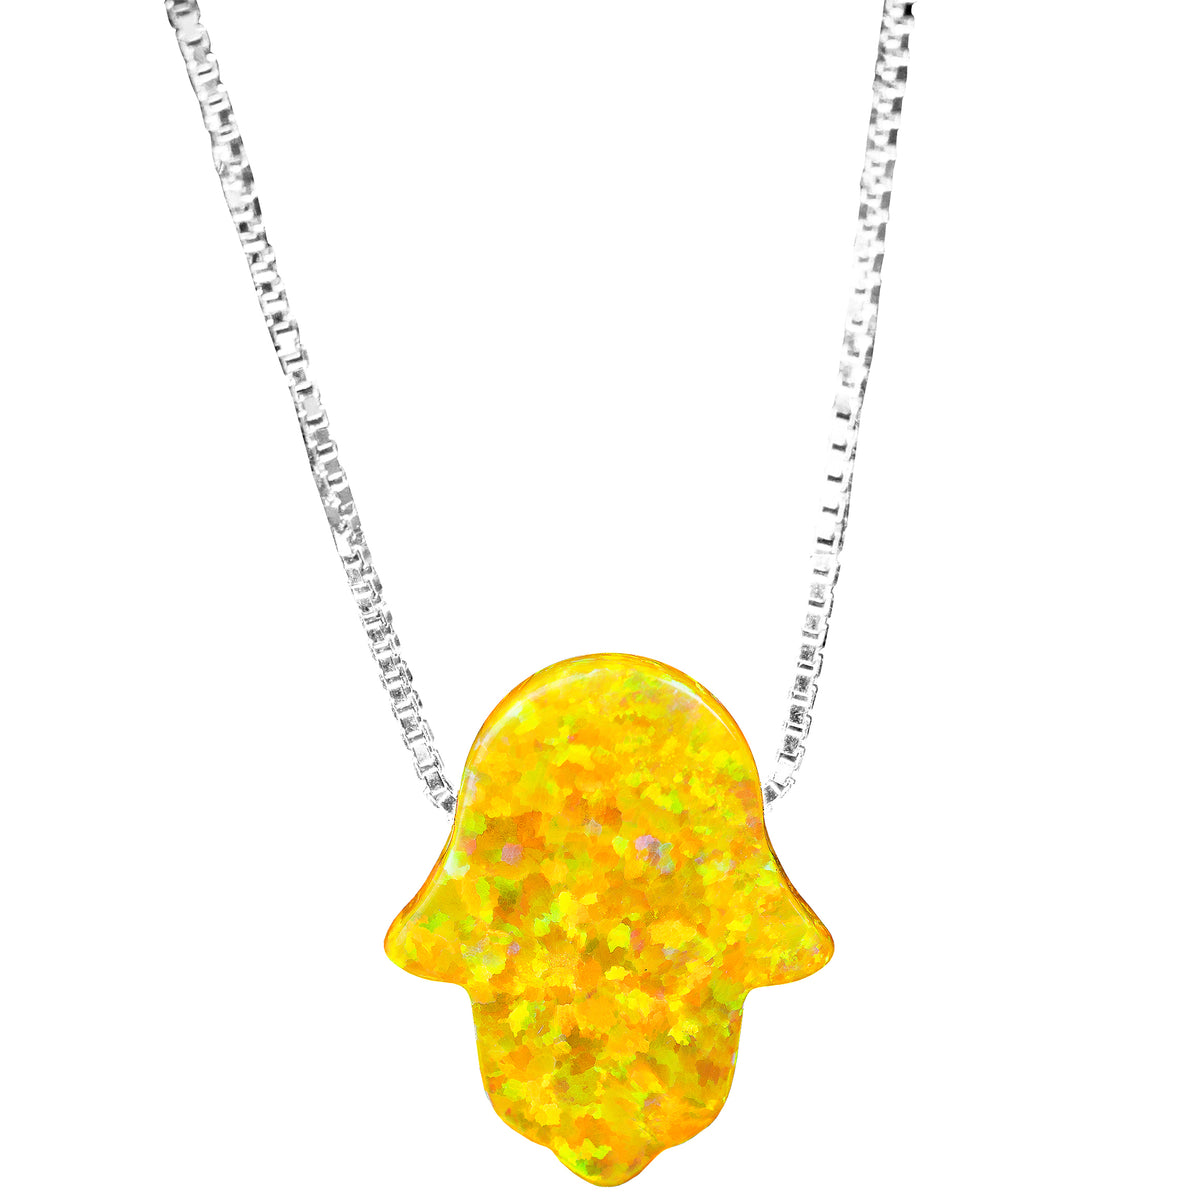 Good Luck Opal Hamsa Hand Necklace with Sterling Silver chain - Sunshine Yellow